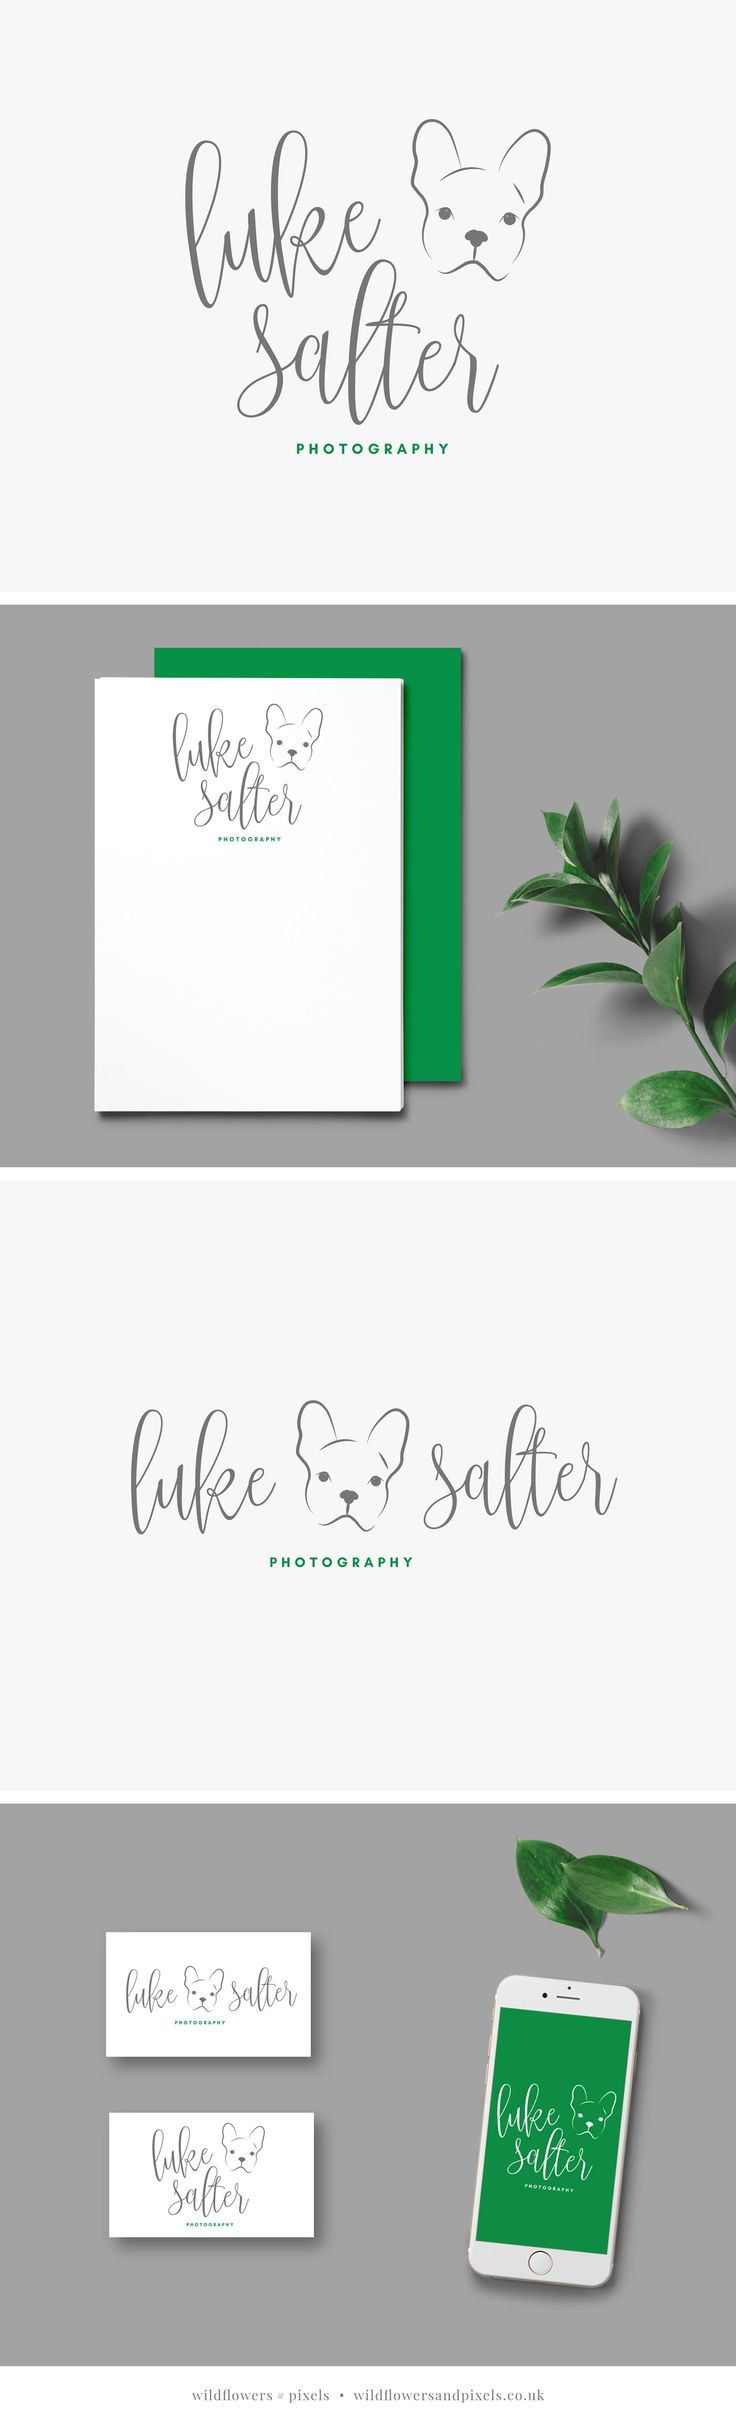 Branding for Luke Salter Photography by Wildflowers & Pixels. Pet photography logo design and branding. via @wildflowerspix